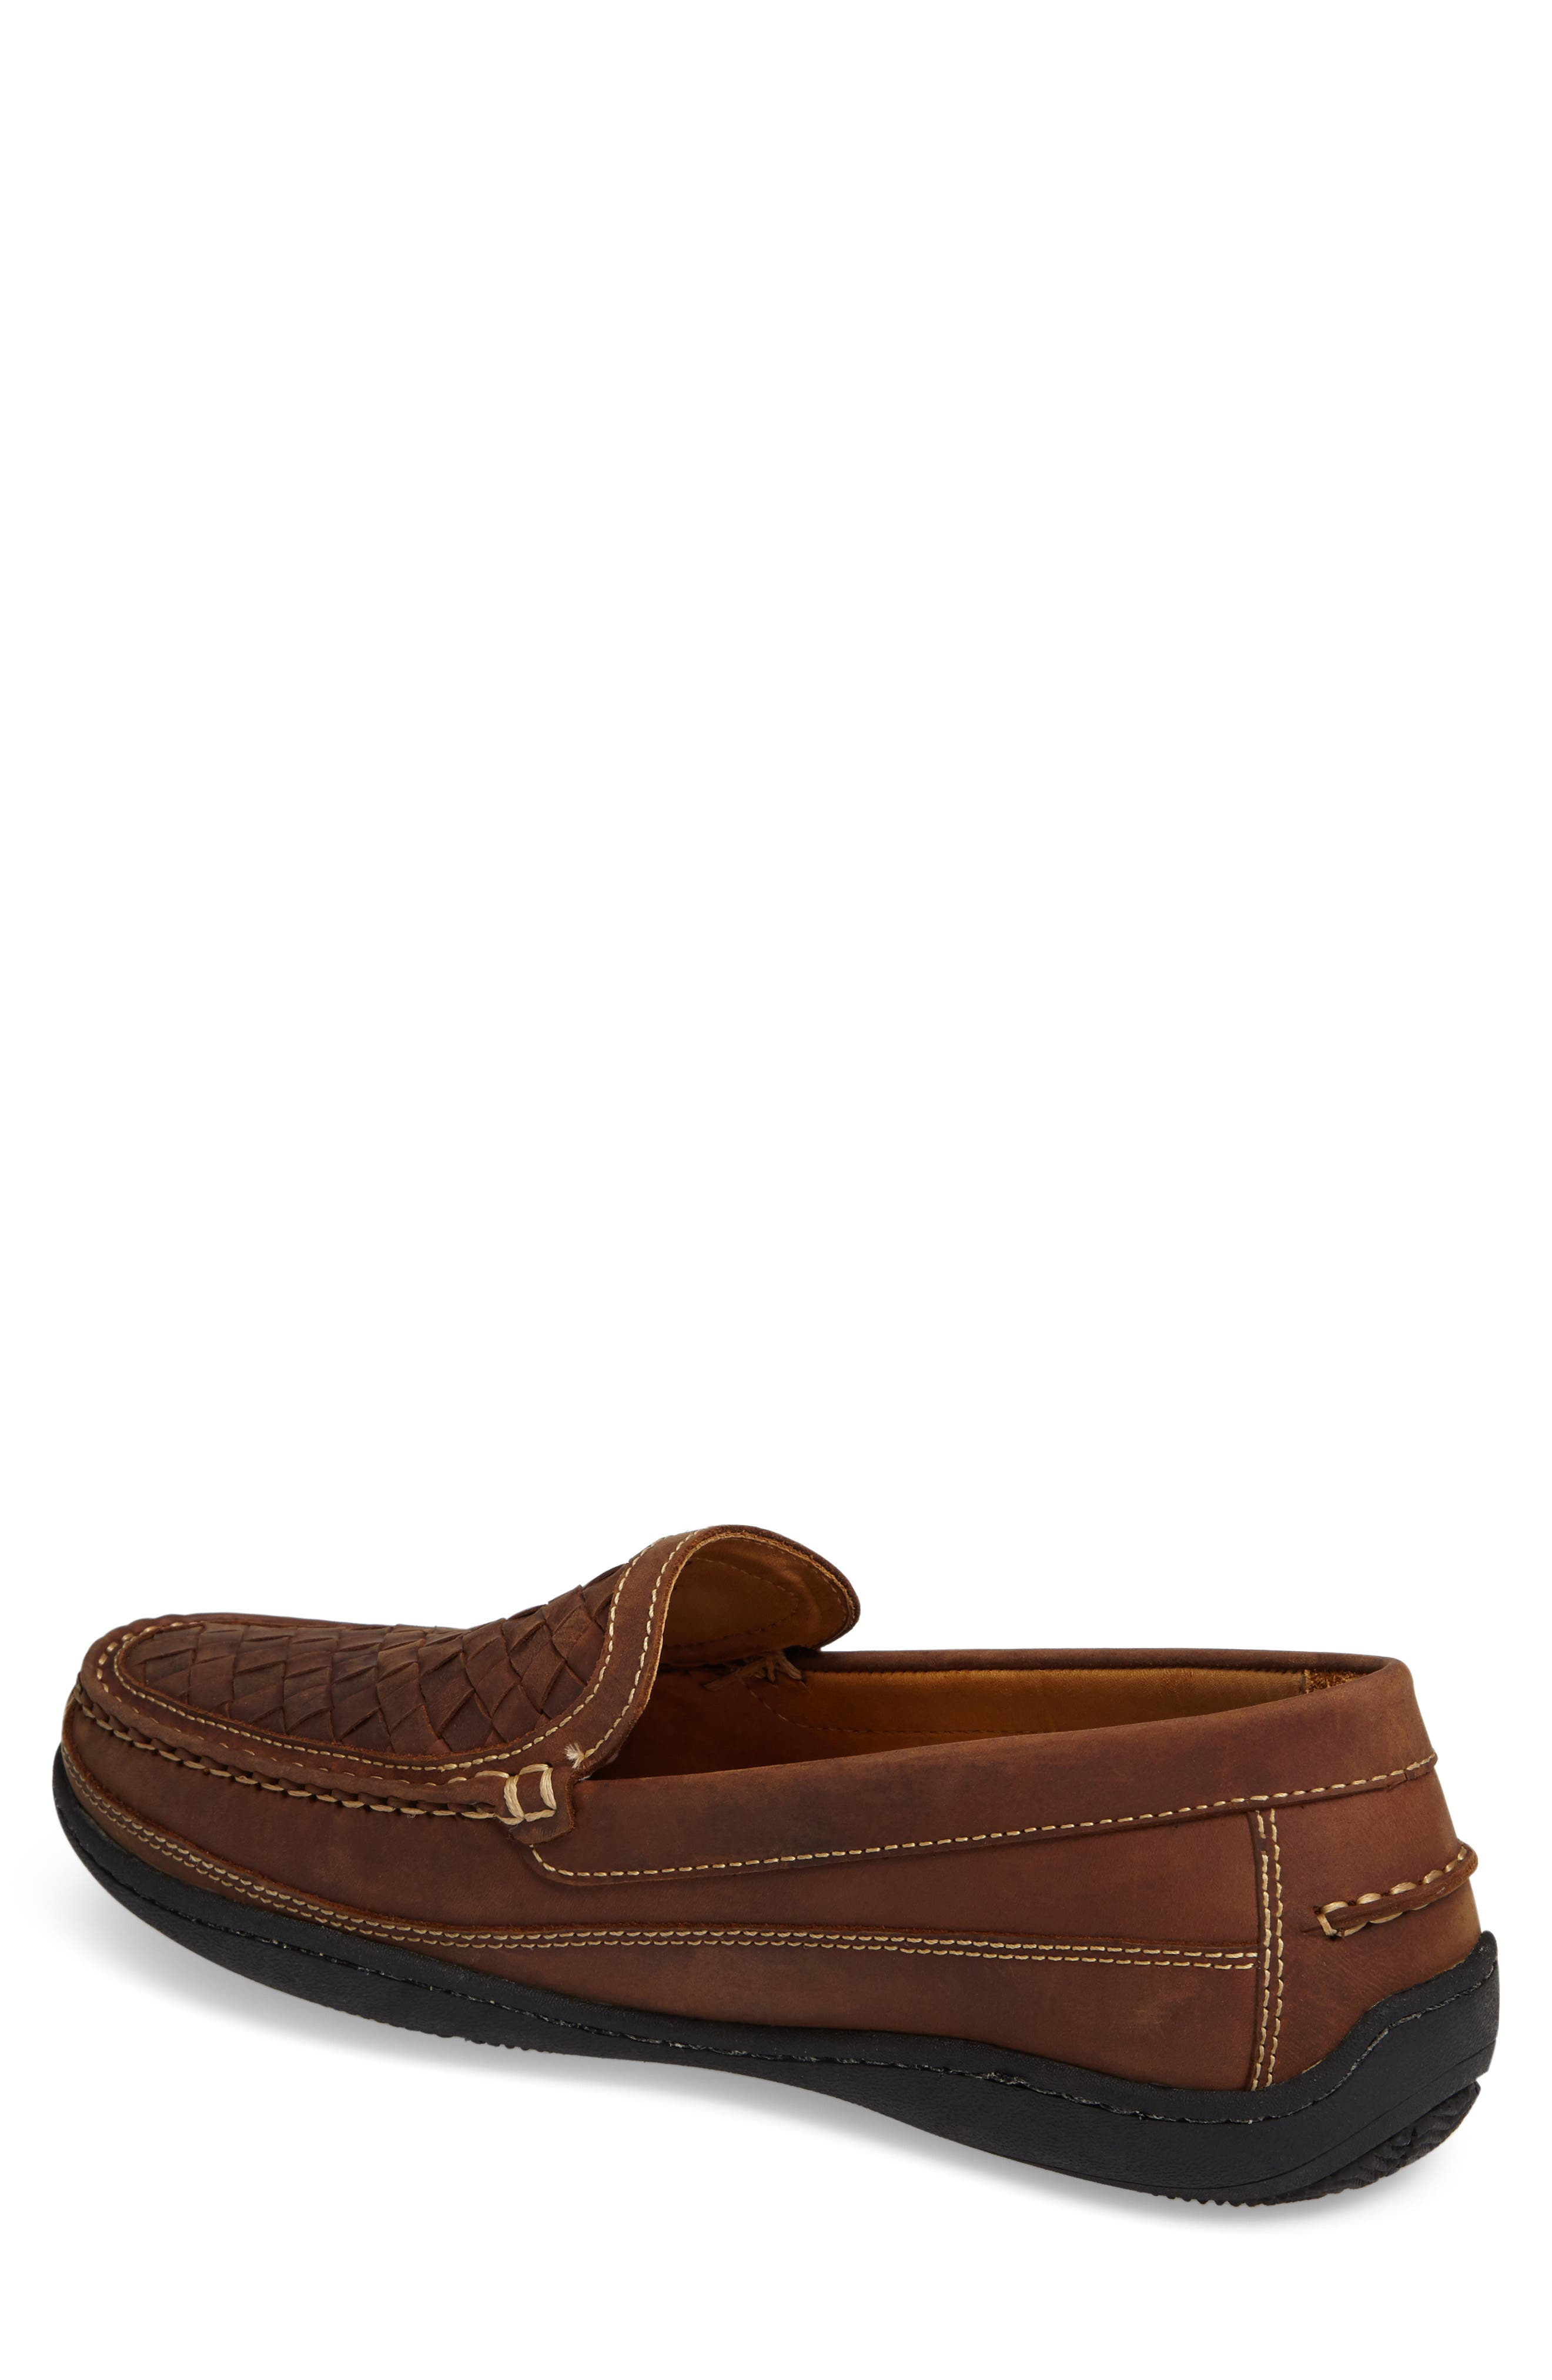 JOHNSTON & MURPHY,                             Fowler Woven Loafer,                             Alternate thumbnail 2, color,                             TAN LEATHER